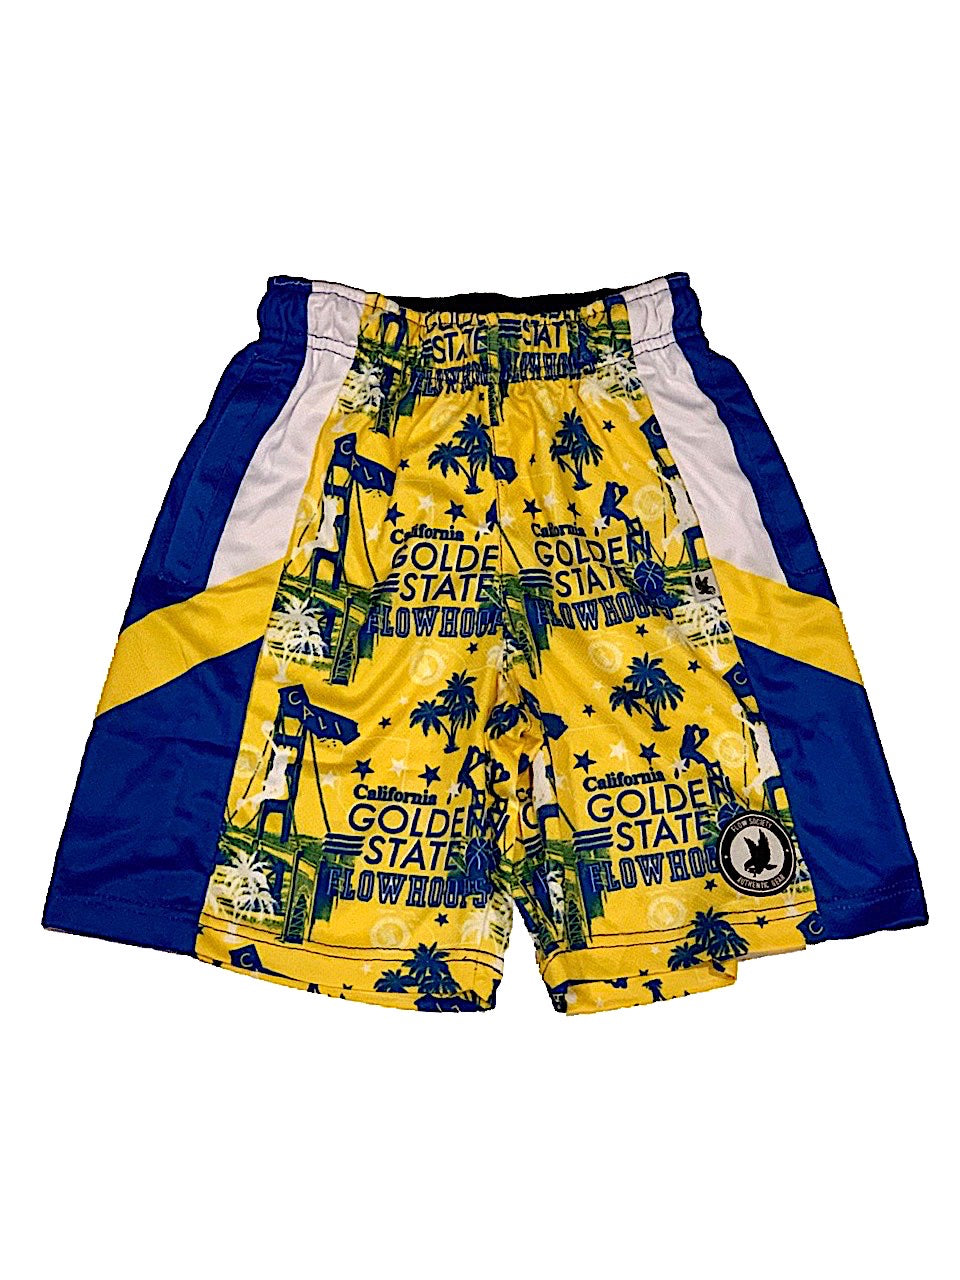 FlOW SOCIETY GOLDEN STATE HOOPS SHORTS